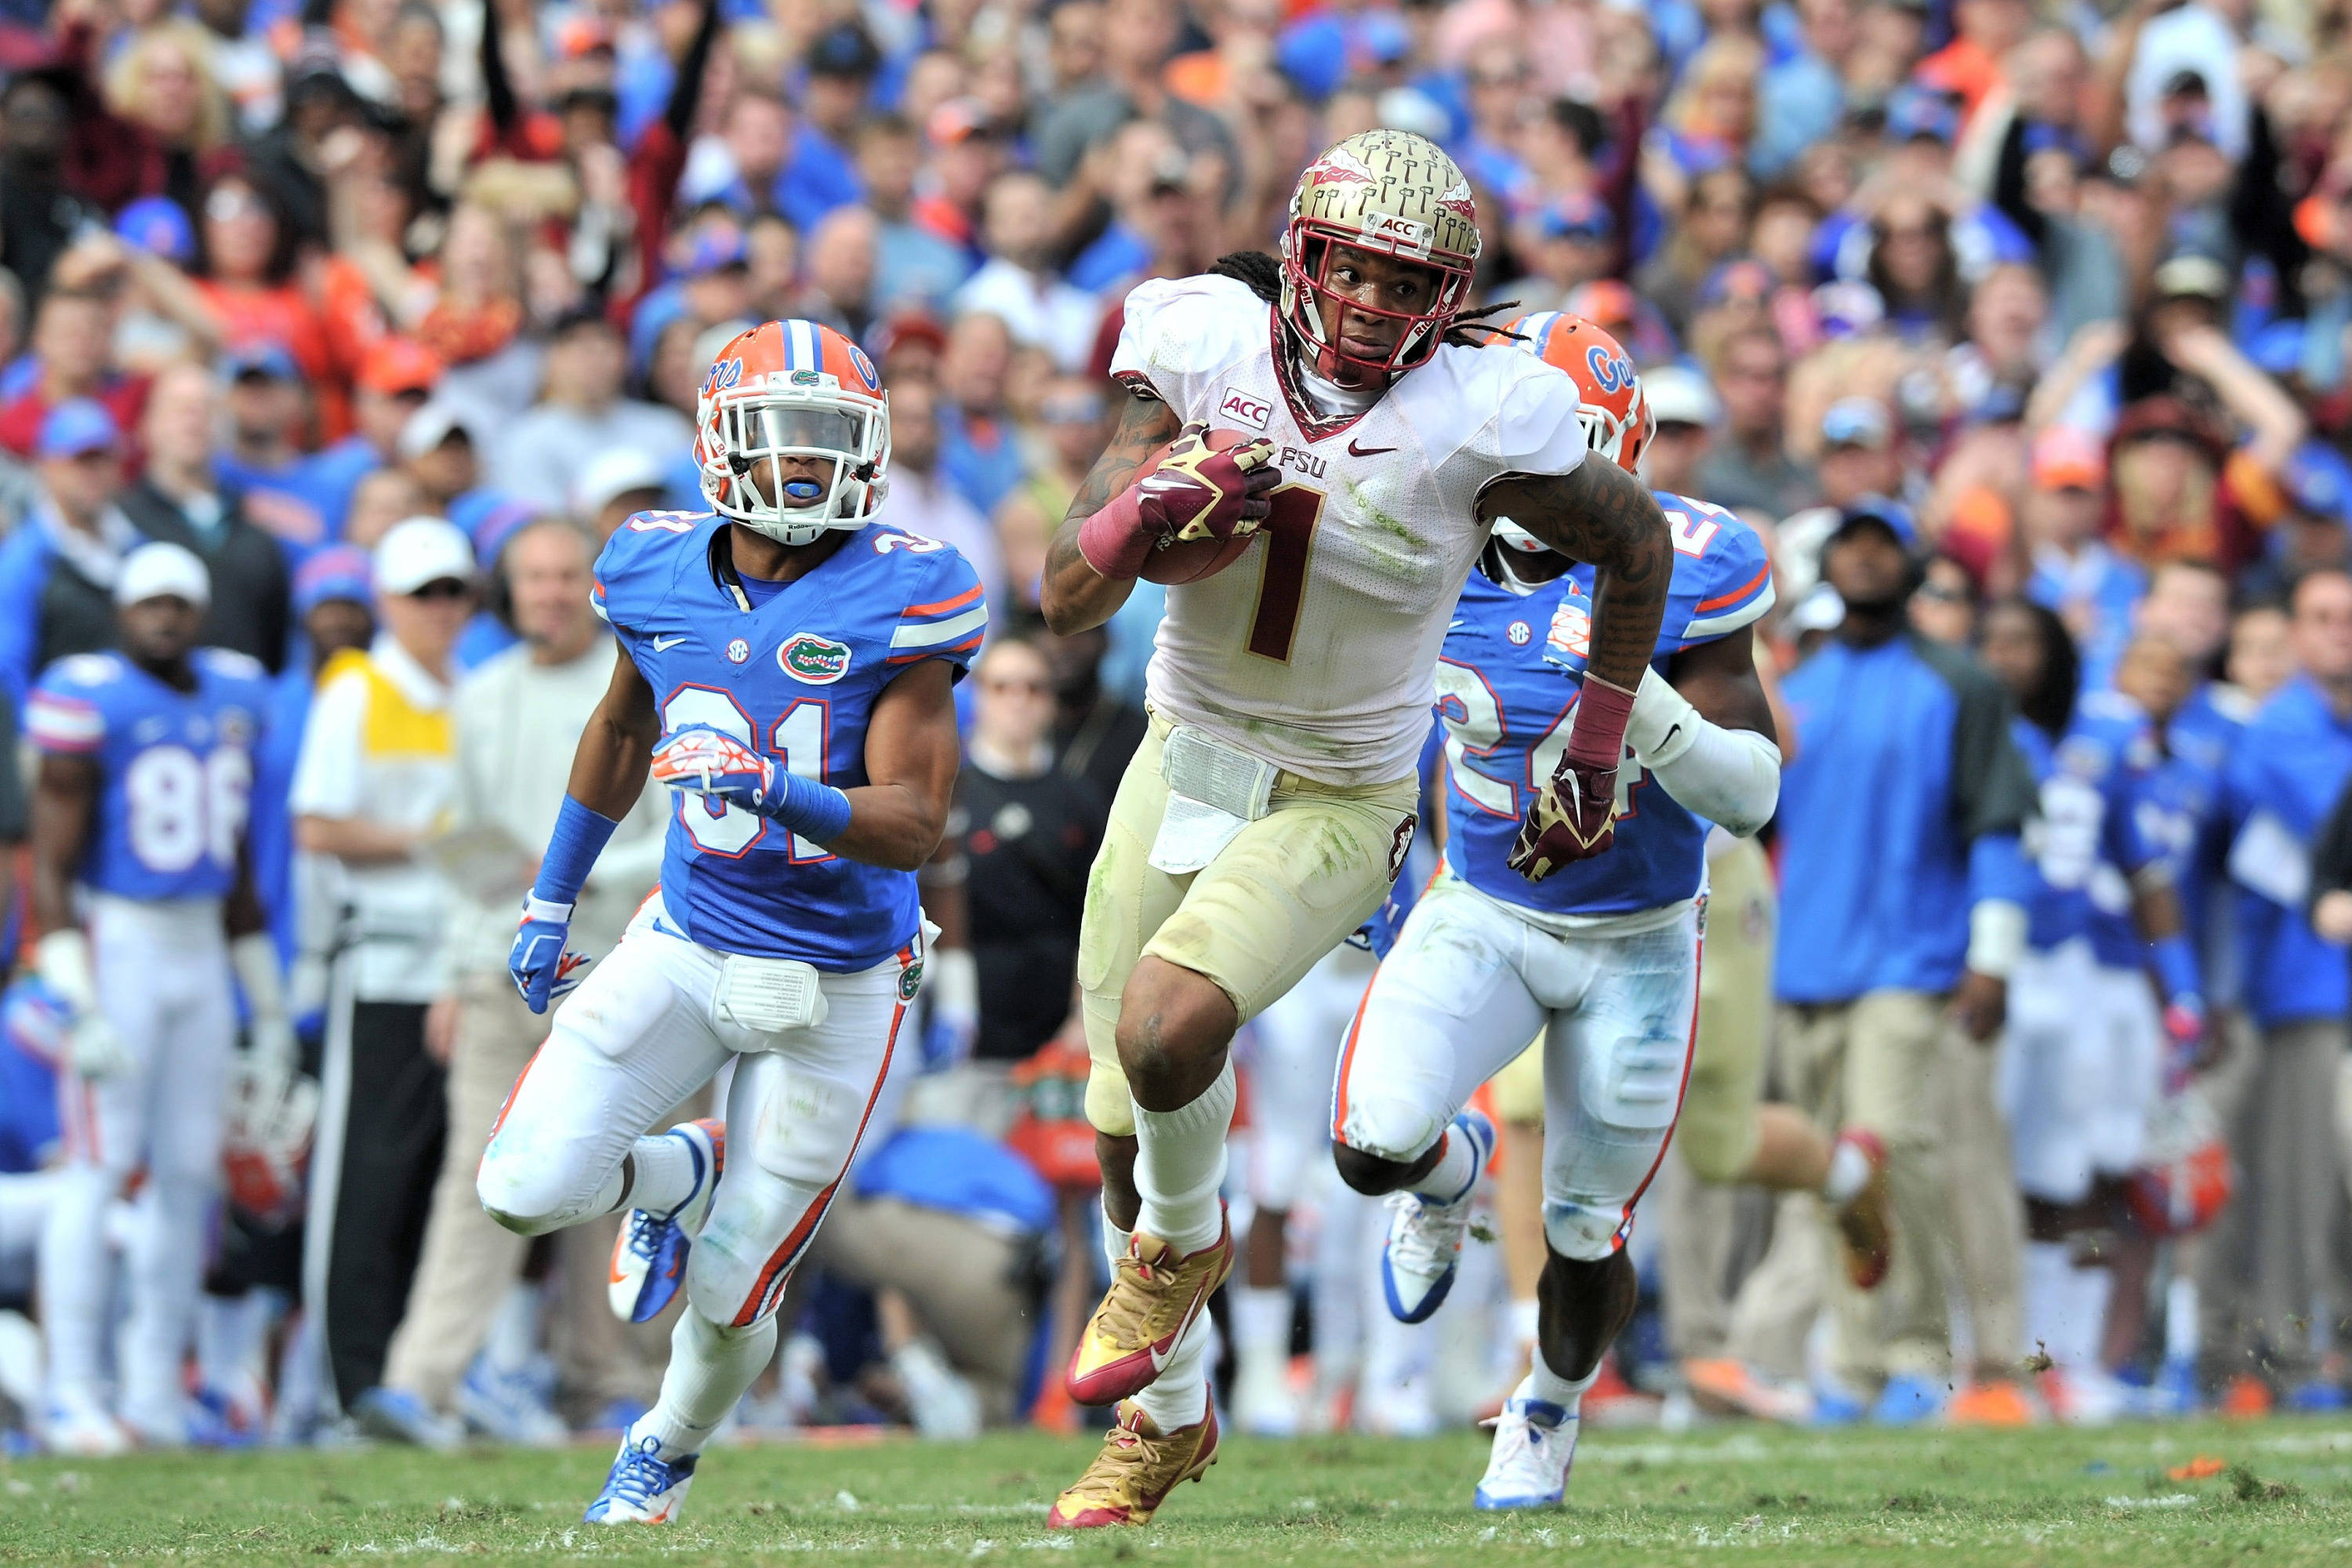 Kelvin Benjamin (center) runs past Florida Gators defensive back Cody Riggs (left) and Florida Gators defensive back Brian Poole (right) for a touchdown. Mandatory Credit: Steve Mitchell-USA TODAY Sports